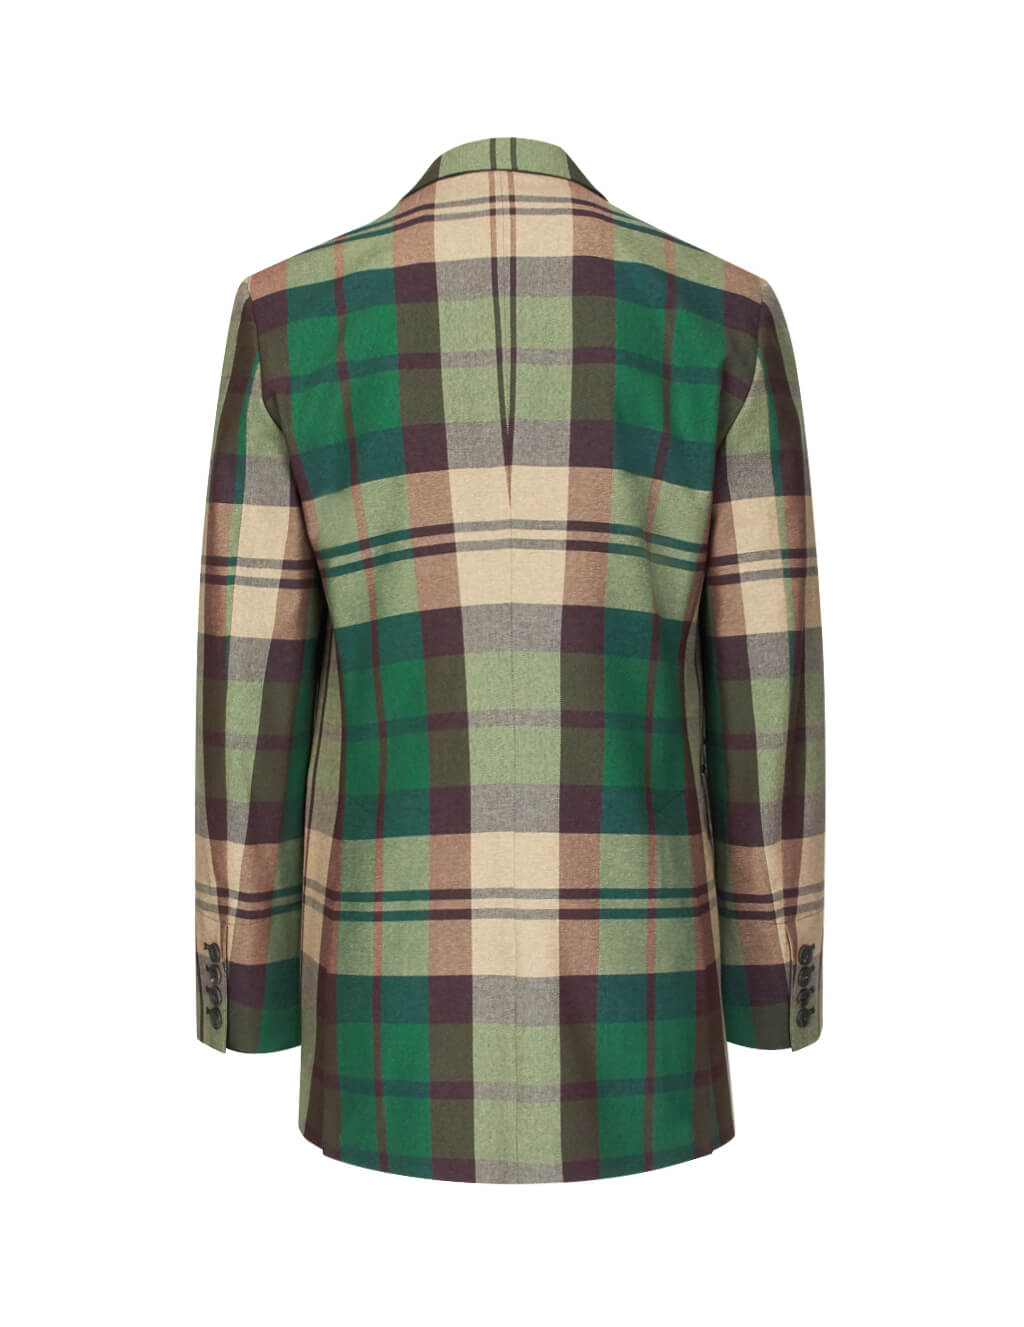 Vivienne Westwood Men's Giulio Fashion Green Tartan Jacket S25BN0412S52106001F